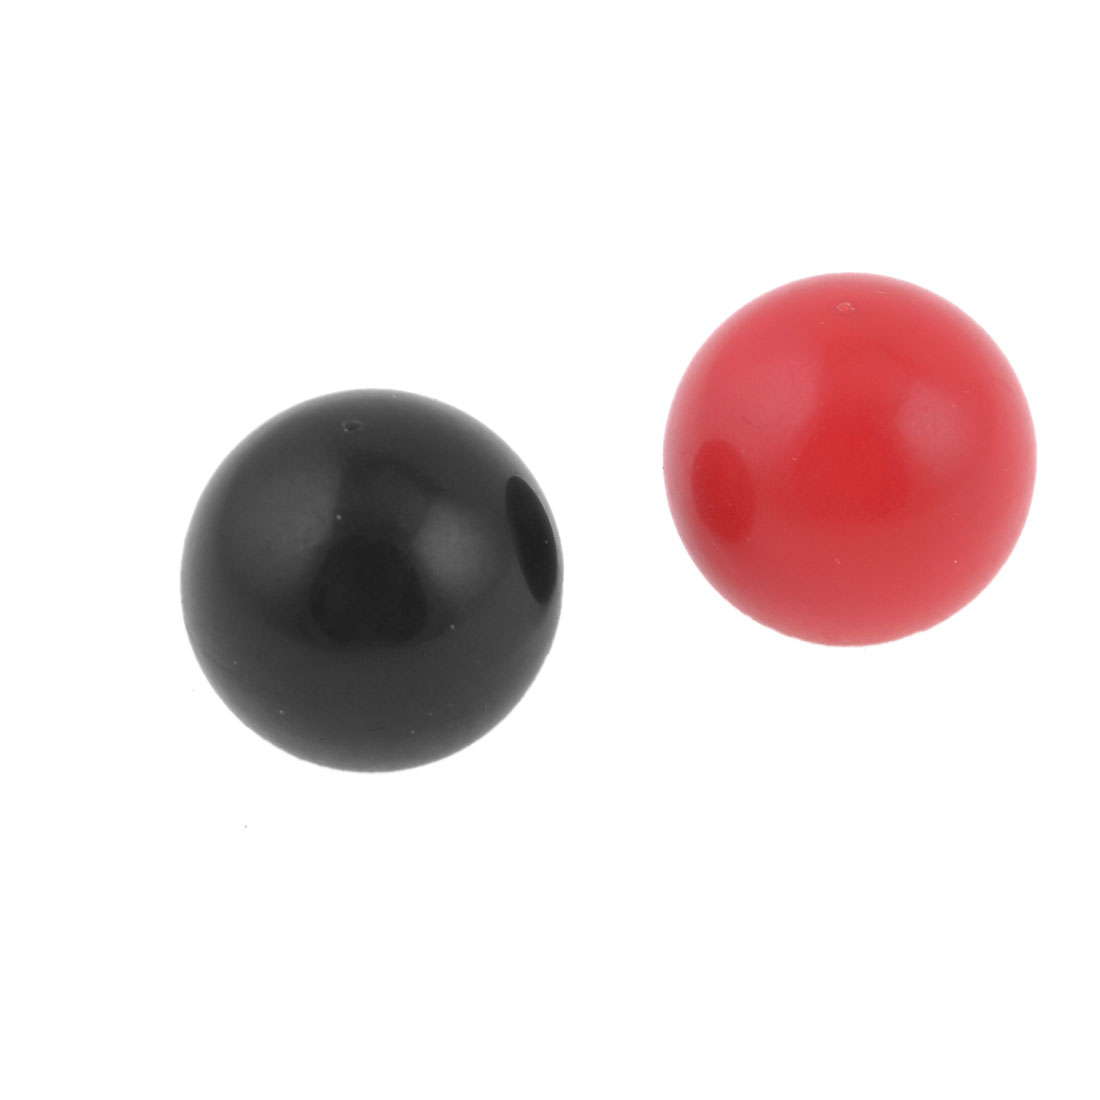 "2 Pcs 0.2"" Dia Threaded Plastic Ball Knob Round Handle Black Red for Machine Tool"